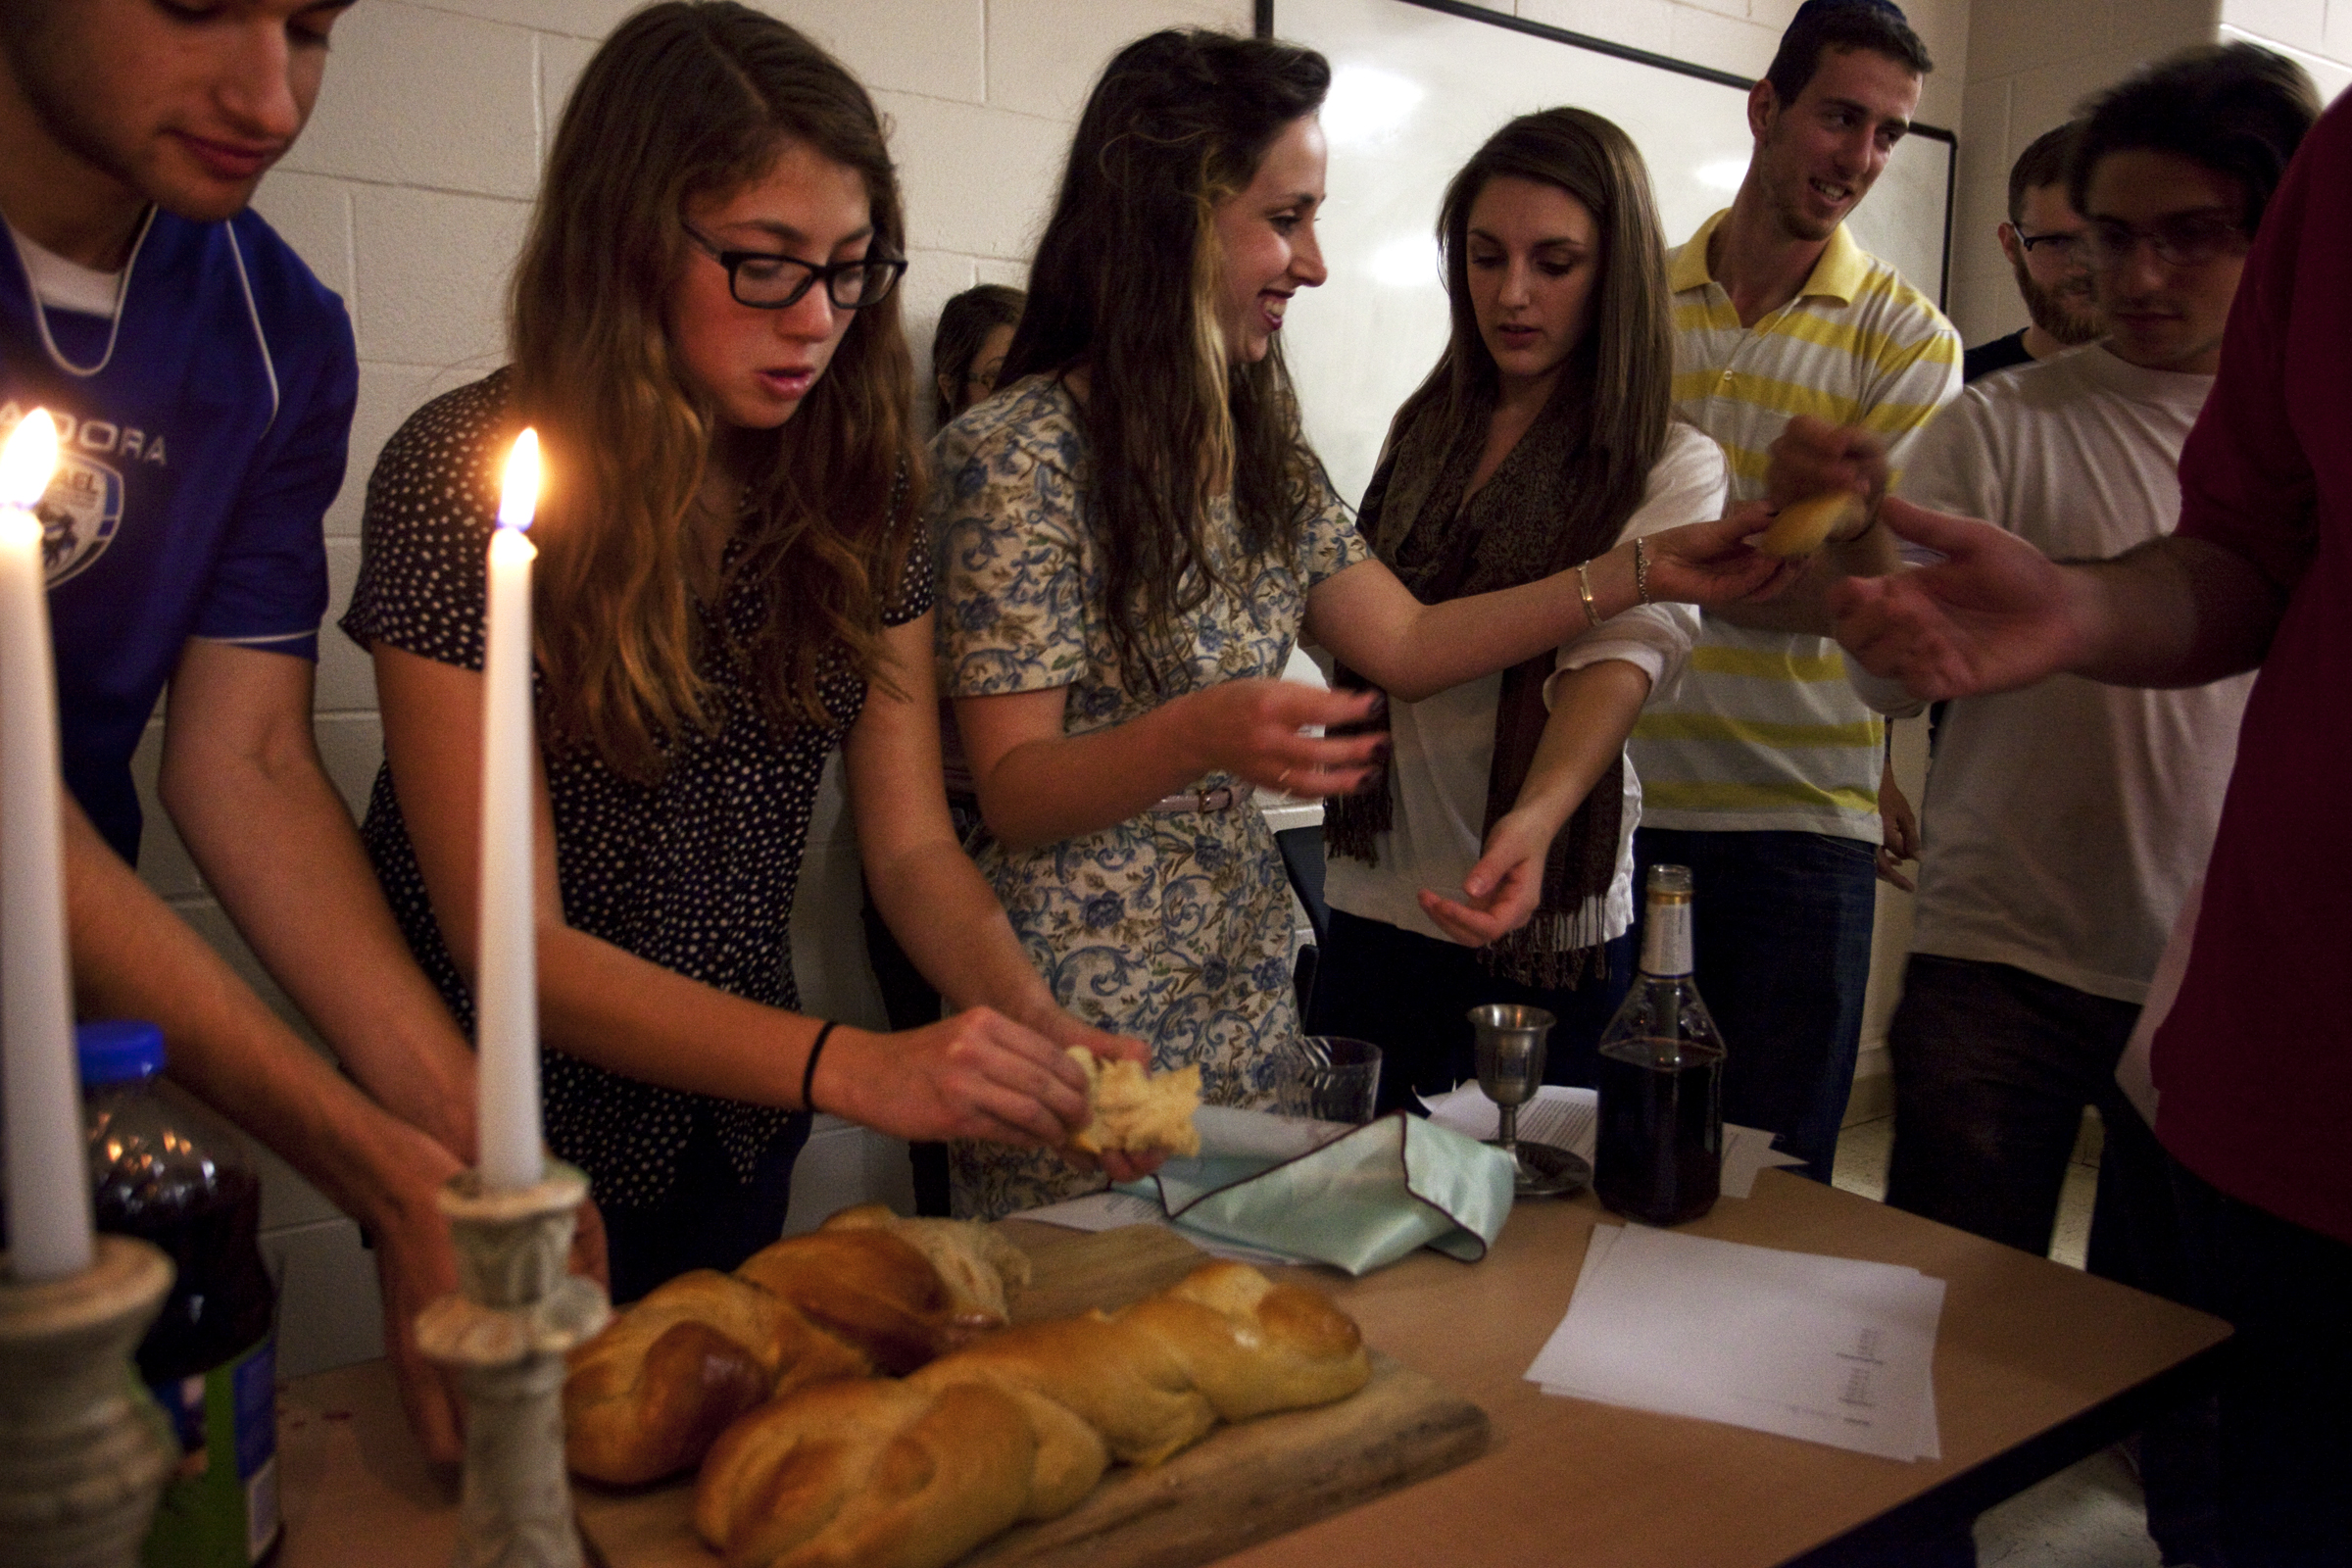 Tracy Jo Ingram, a Louisville, Ky senior, passes Challah, a traditional Jewish bread, around during the first Jewish Student Union Shabbat dinner on Friday, November 9,2012. Shabbat is the seventh day of the Jewish week, traditionally meant for rest. Western's Jewish Student is in its first year on campus.